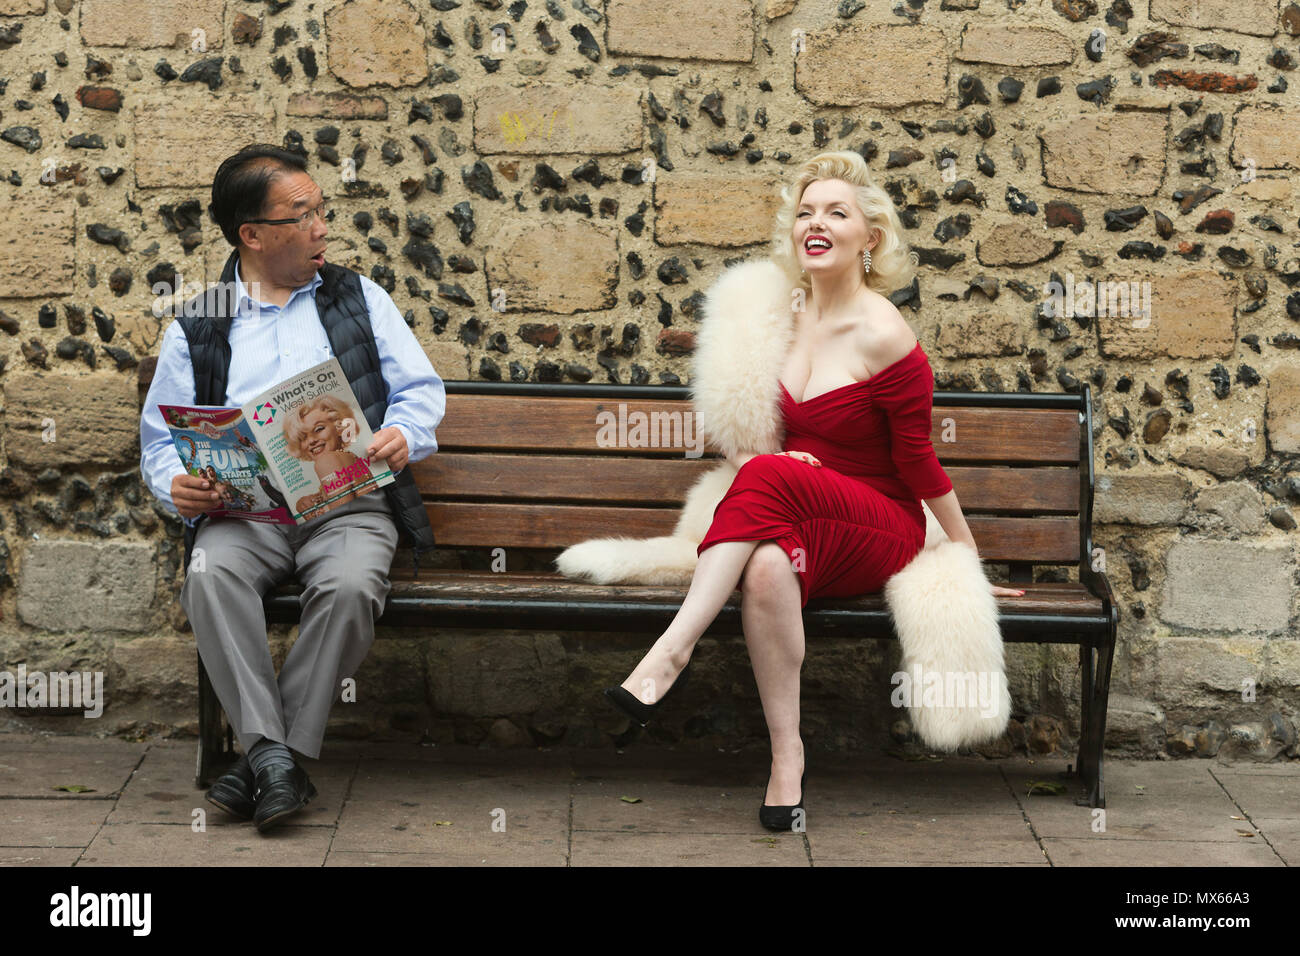 Bury St Edmunds, UK. 2nd Jun, 2018. Deputy Mayor Patrick Chung taken a gasp as he realises he is seated beside the world's leading Marilyn Monroe tribute artist, Suzie Kennedy before she opened the 'Timeless' exhibition at Moyses Hall, Bury St Edmunds, which includes stunning images from Marilyn Monroe's very earliest days as a model, behind-the-scenes captures from her film-work, breathtaking location and studio work and emotive candid images that showcase her true personality in a unique and engaging way. Credit: Keith mindham/Alamy Live News - Stock Image